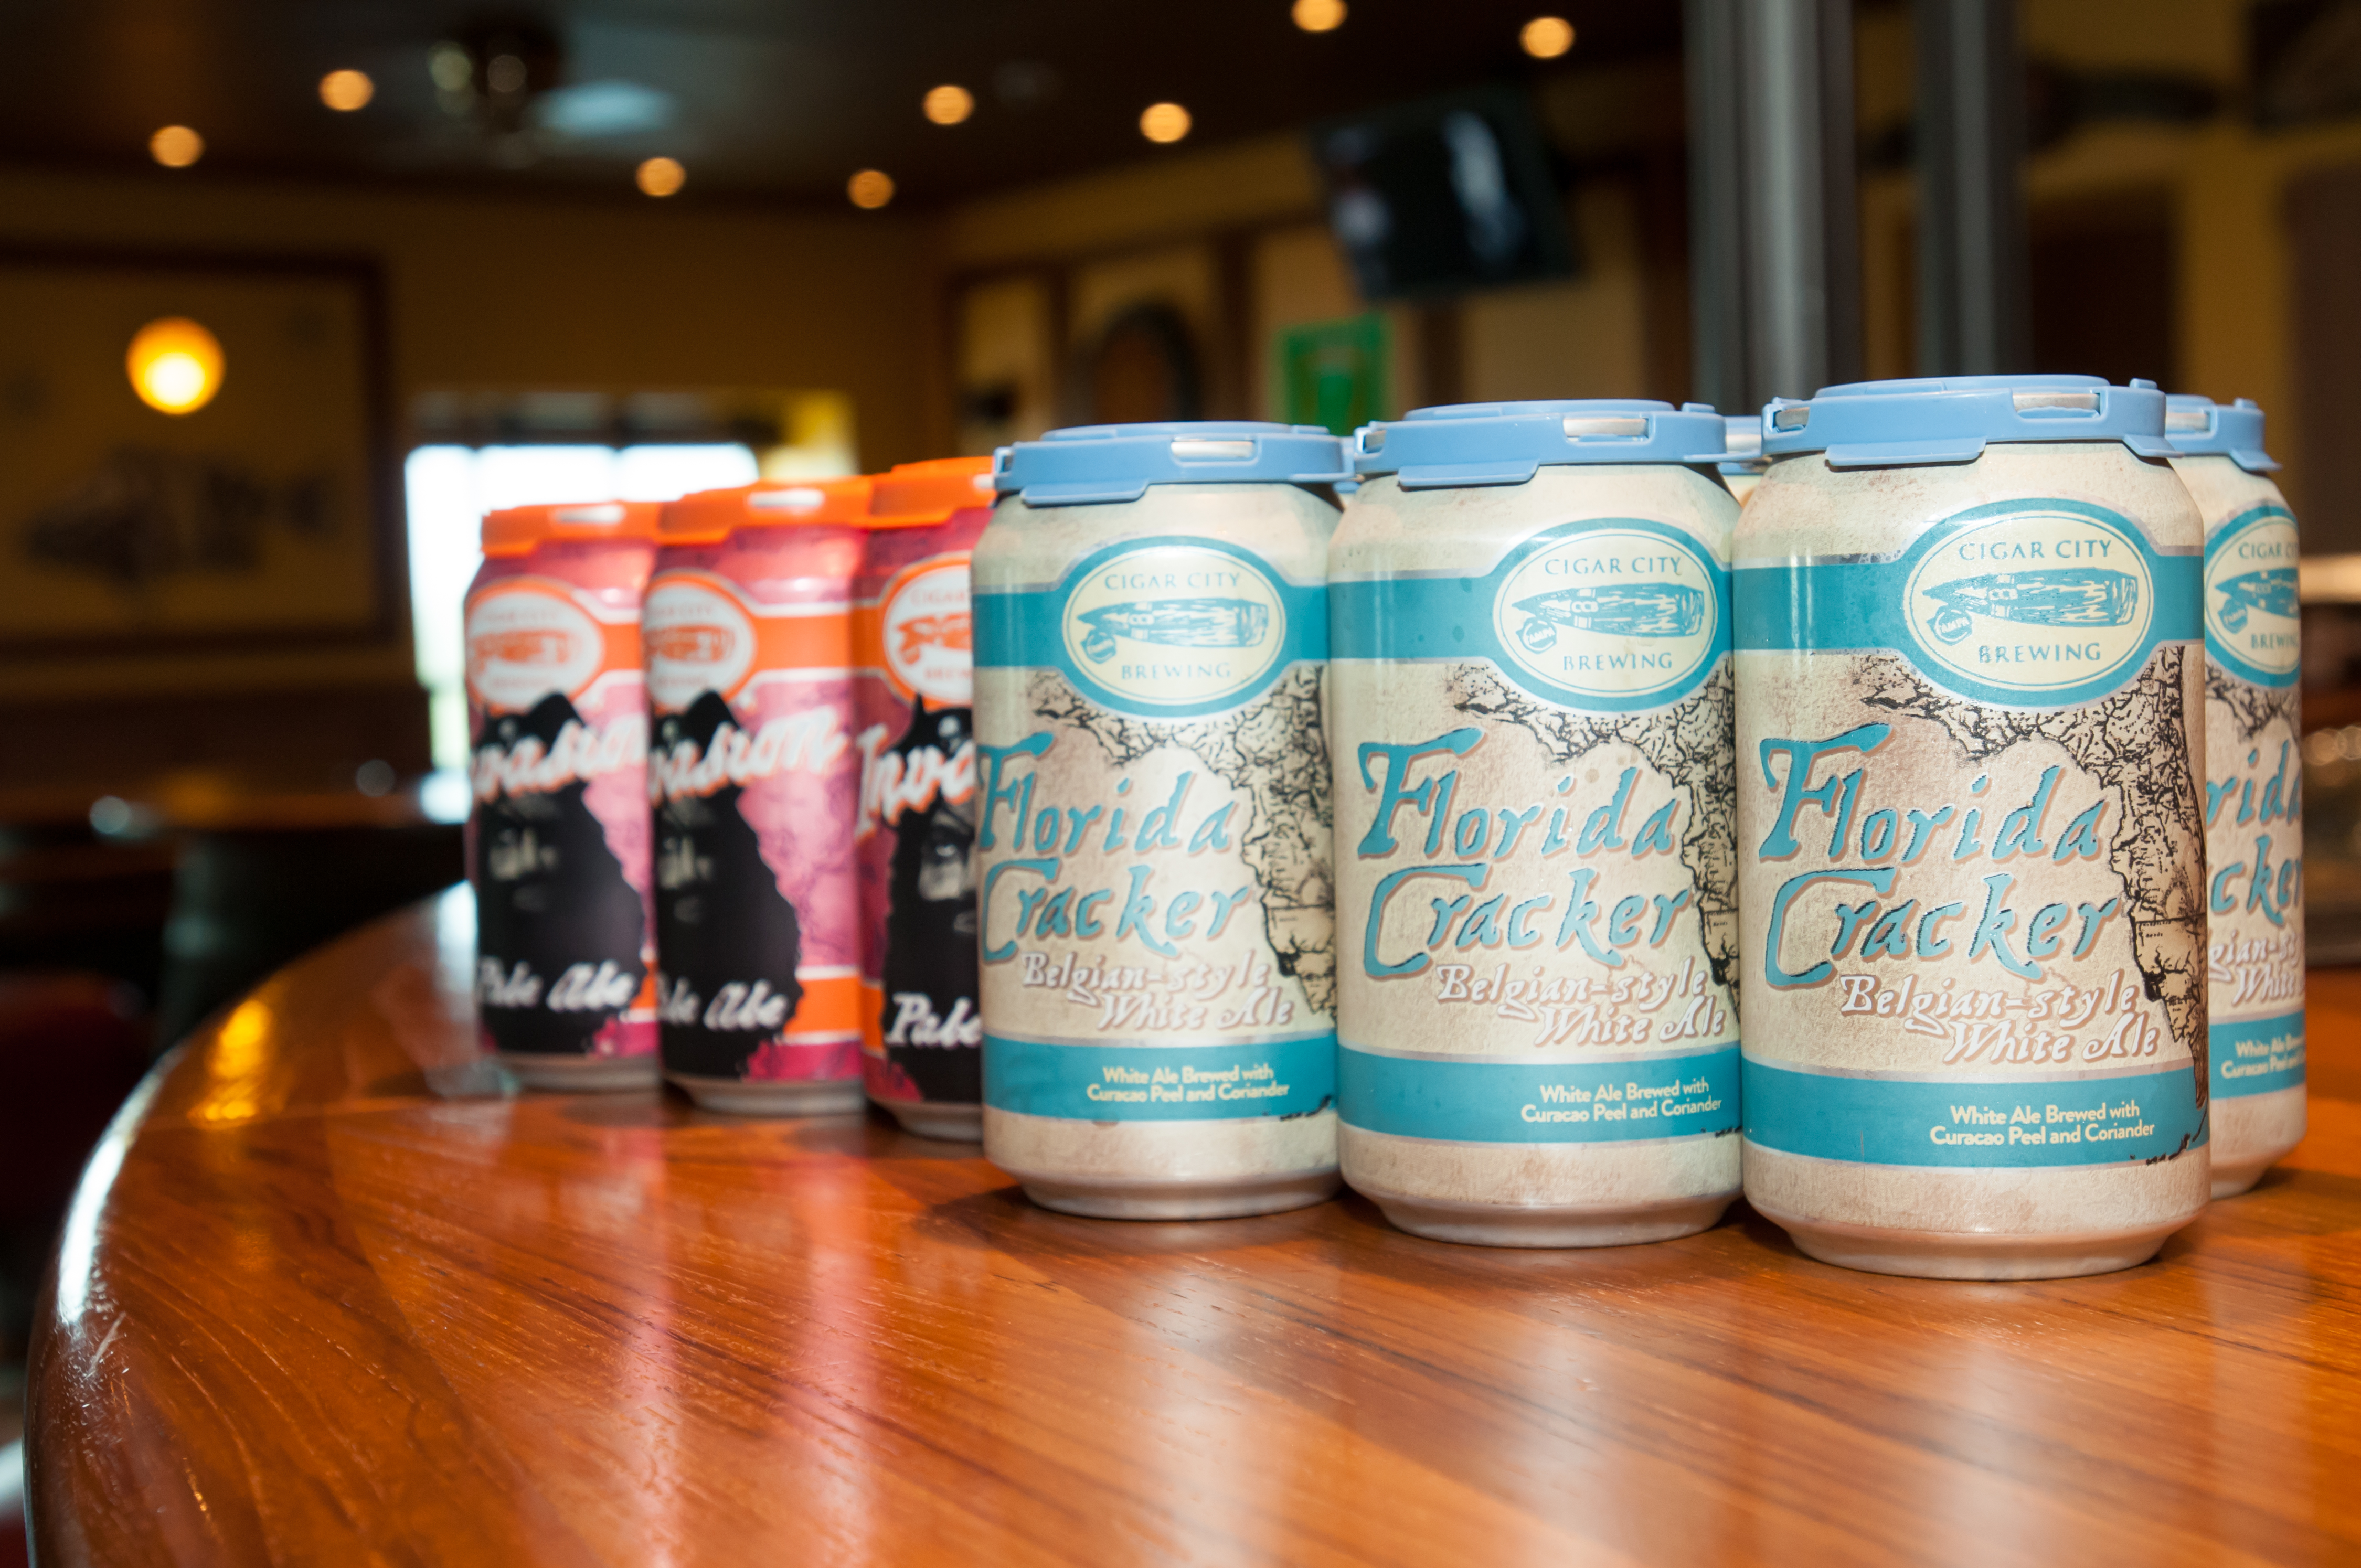 Carnival Cruise Lines Signs Exclusive Agreement With Cigar City Brewing To Offer The Company's Craft Beers On All Florida-Based 'Fun Ships'